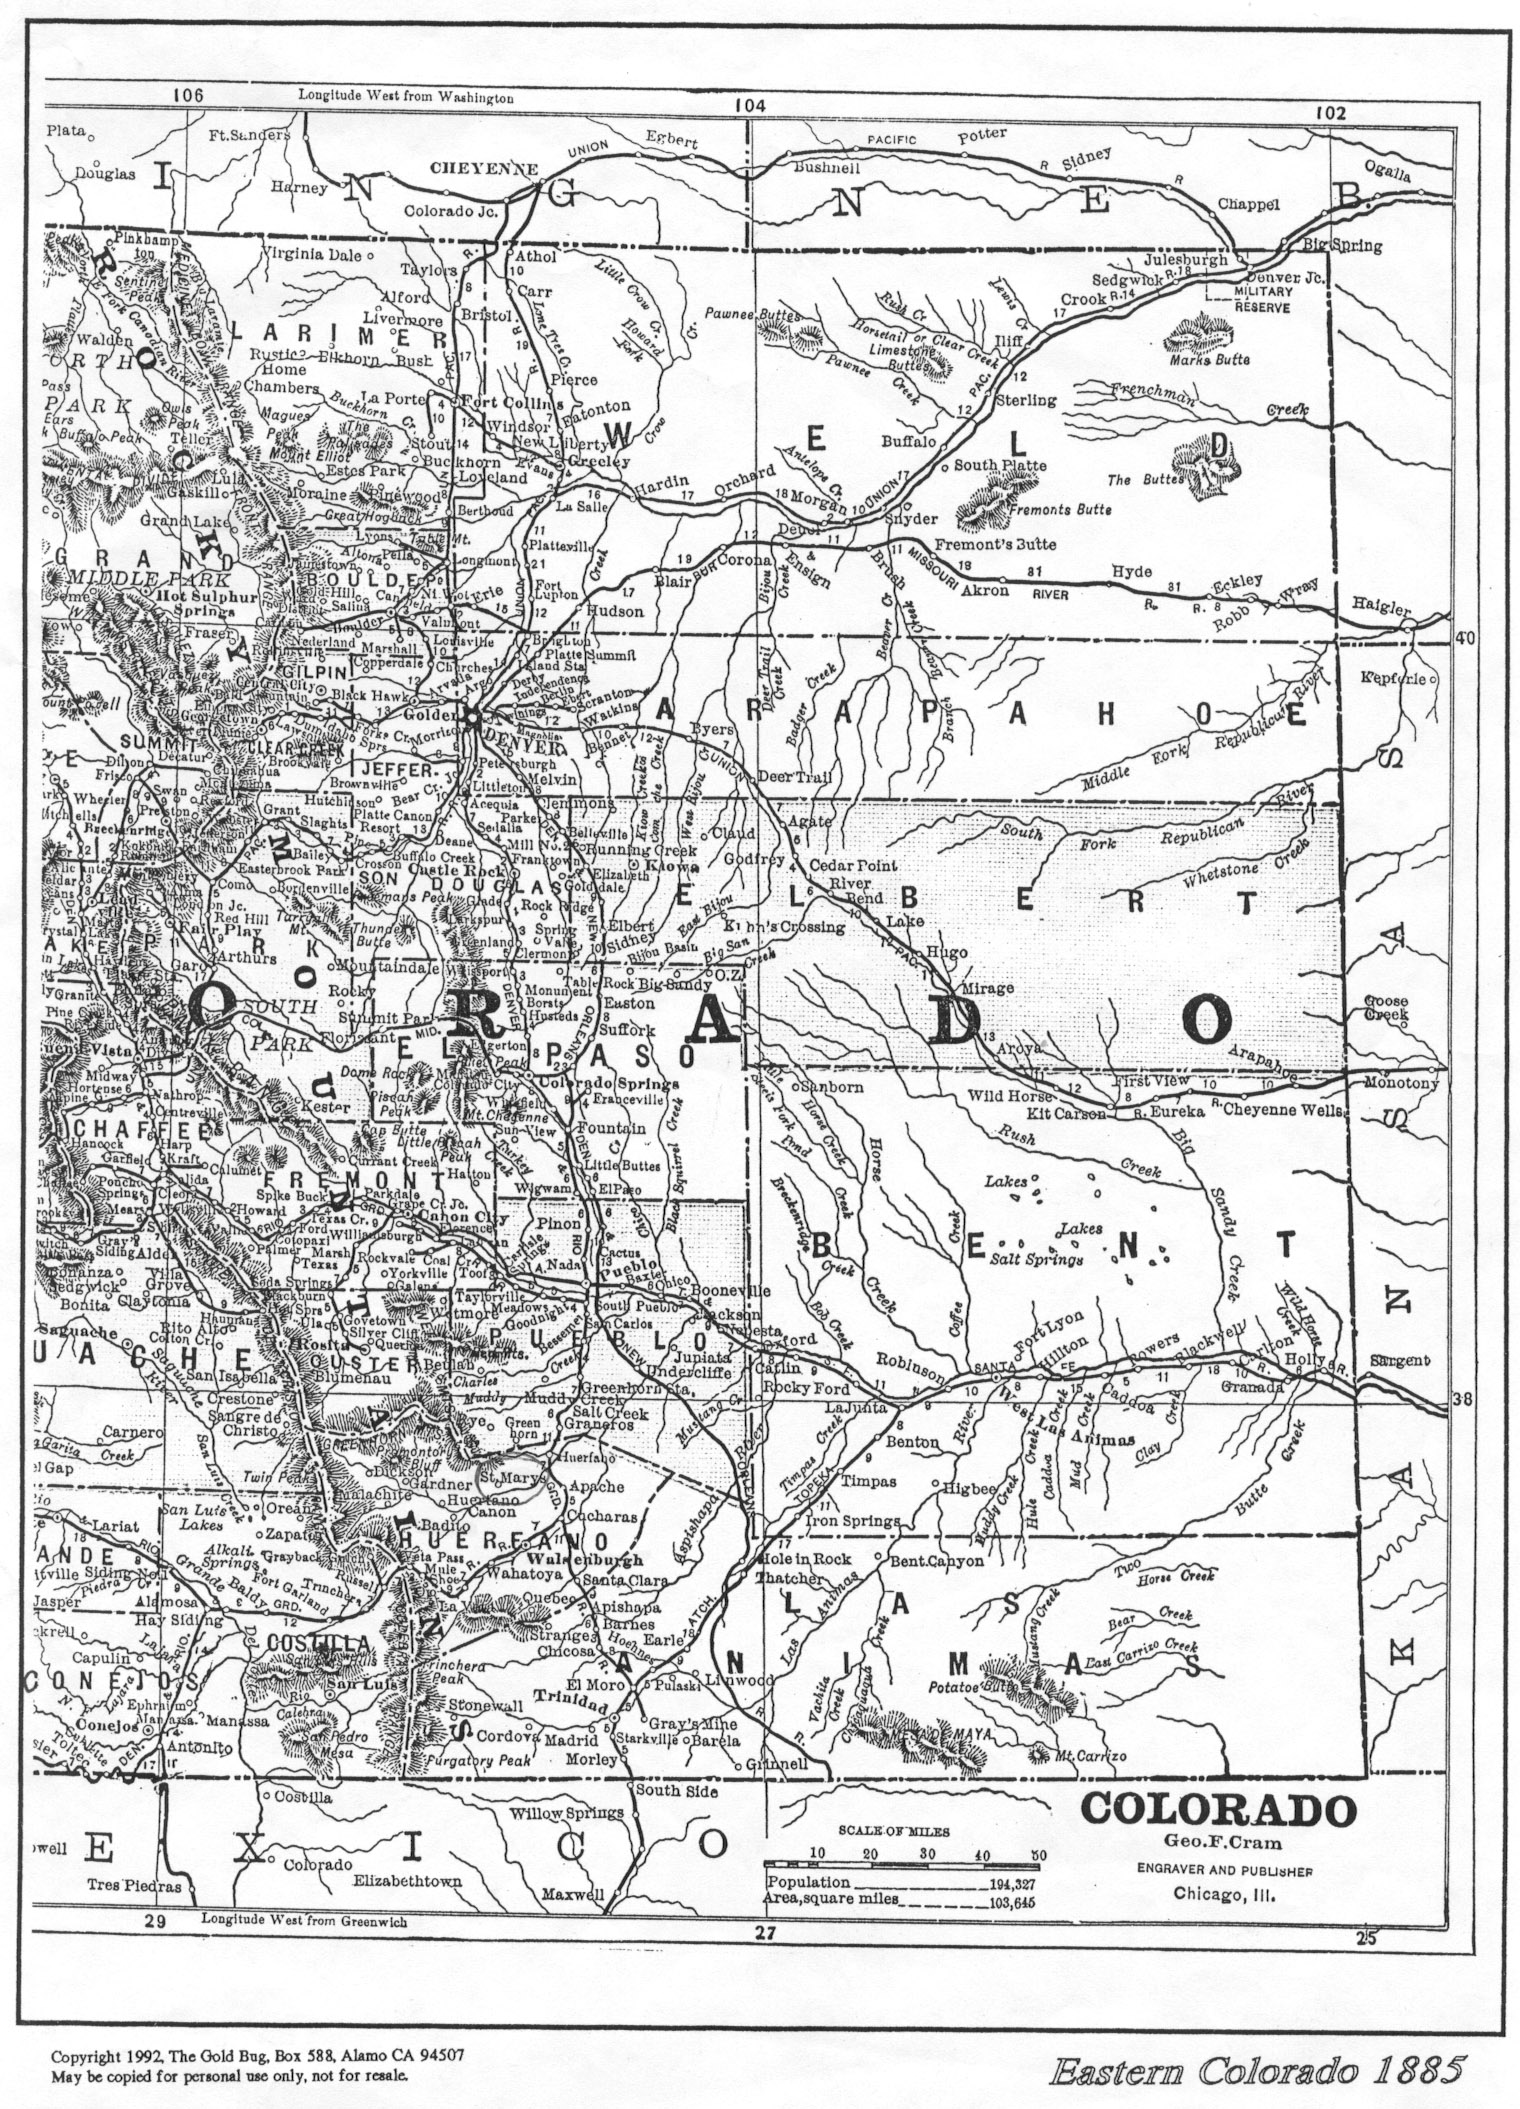 Colorado Maps US Digital Map Library Table Of Contents Page - Coloradomap